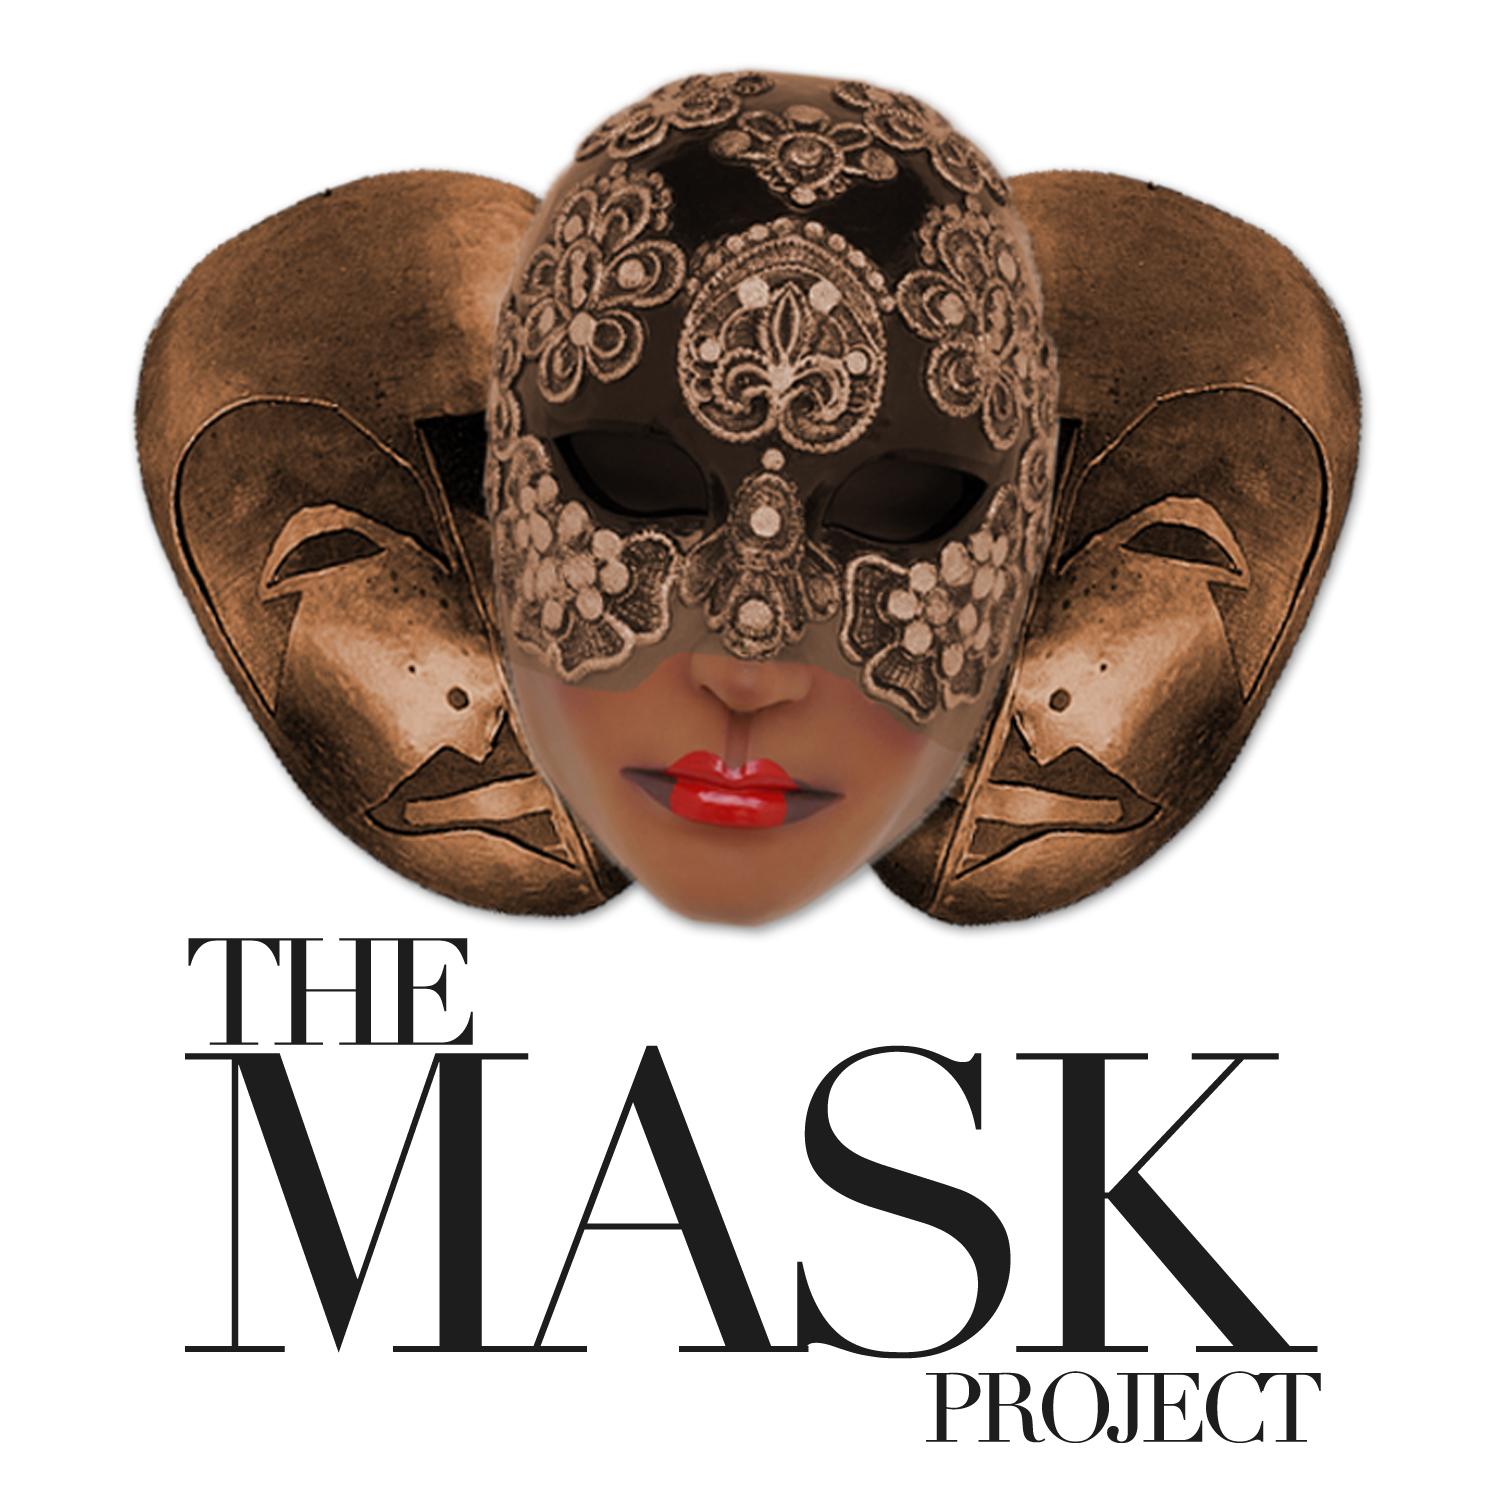 themaskproject_sqaure (1).jpg